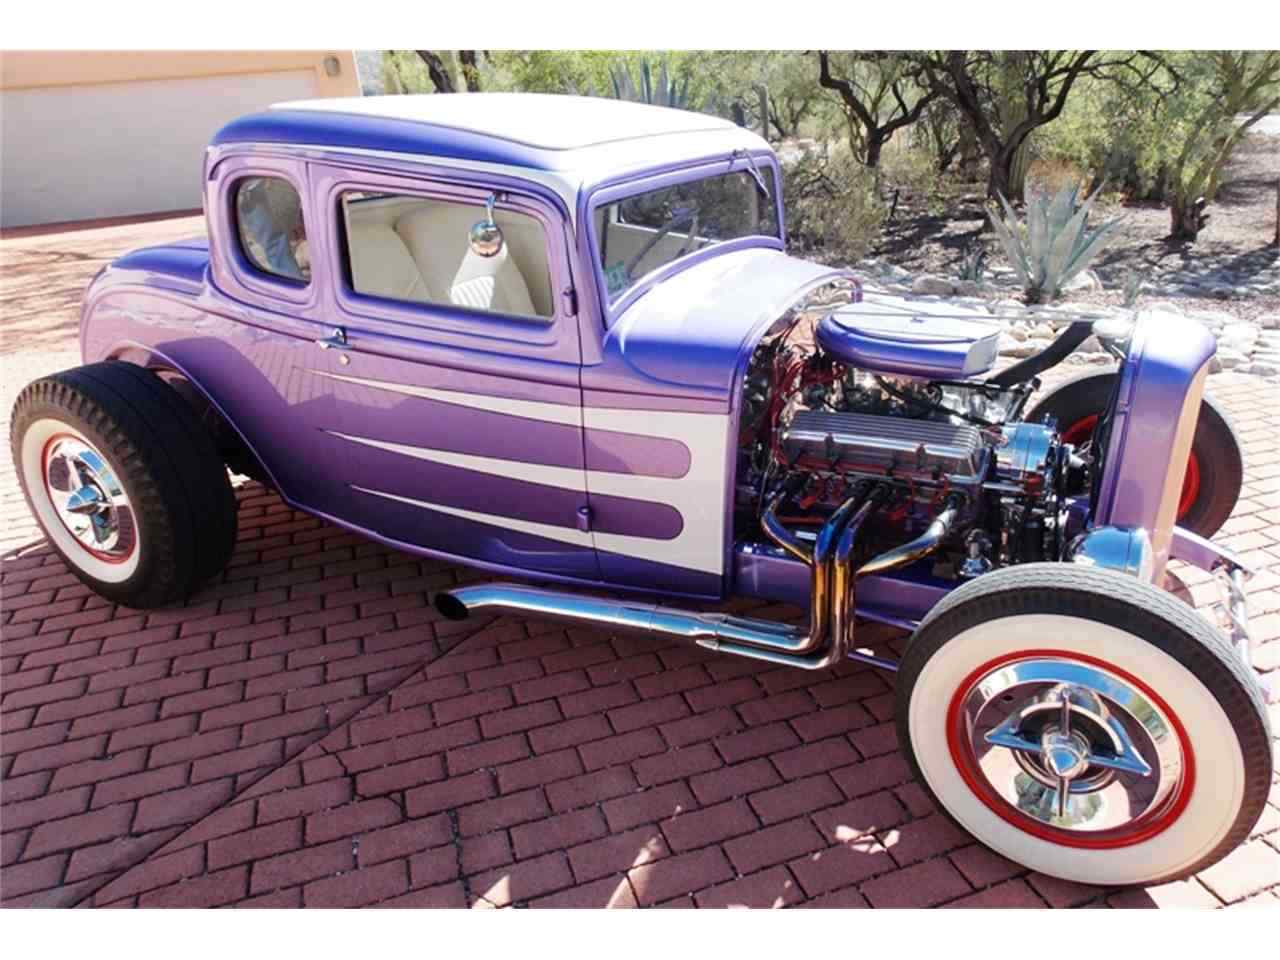 "1932 Ford DELUXE COUPE MODEL 18 1932 FORD 5 WINDOW COUPE ""ALL STEEL CHOPPED AND CHANNELED"""